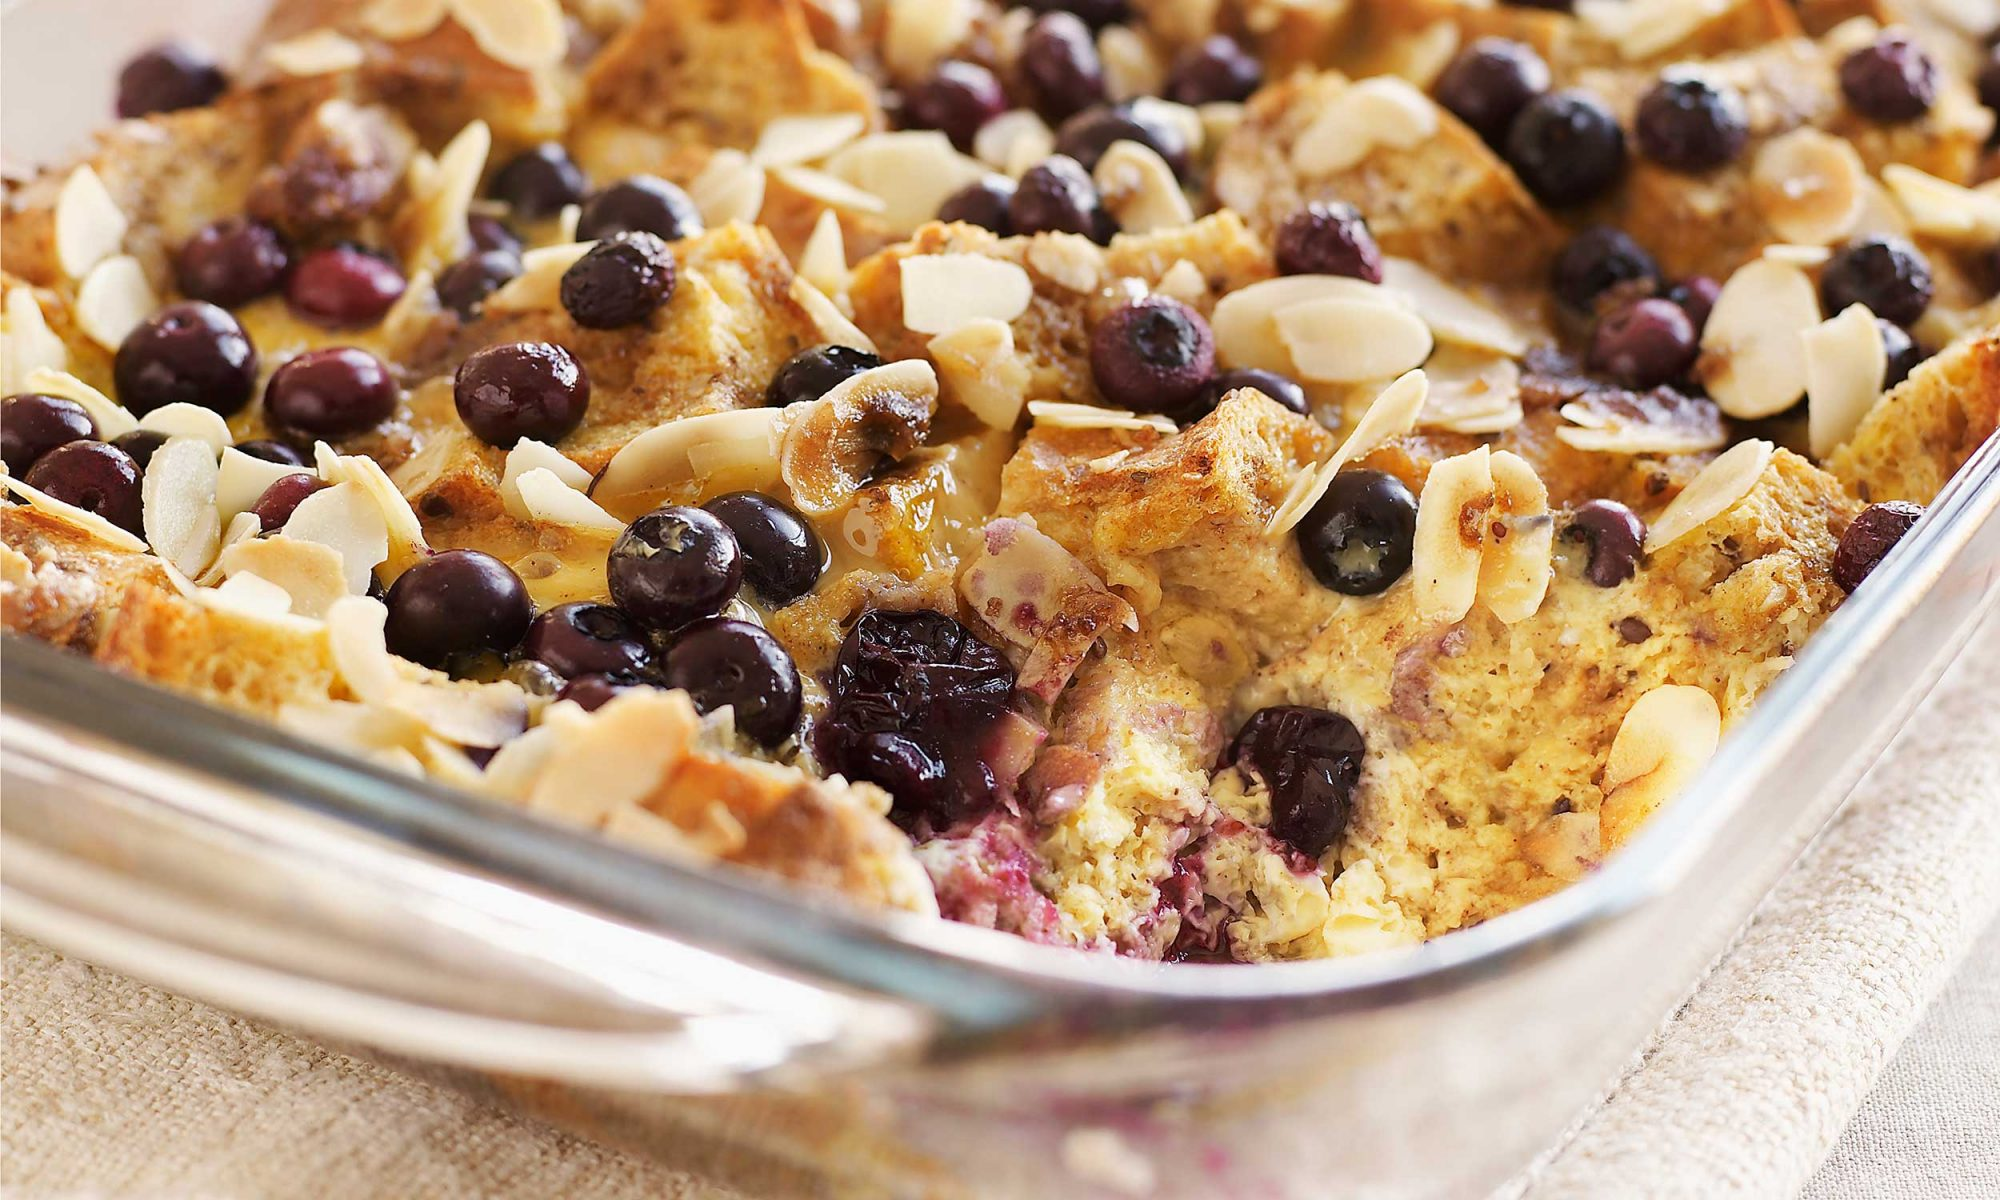 EC: These Baked French Toast Recipes Make Weekday Mornings Easy